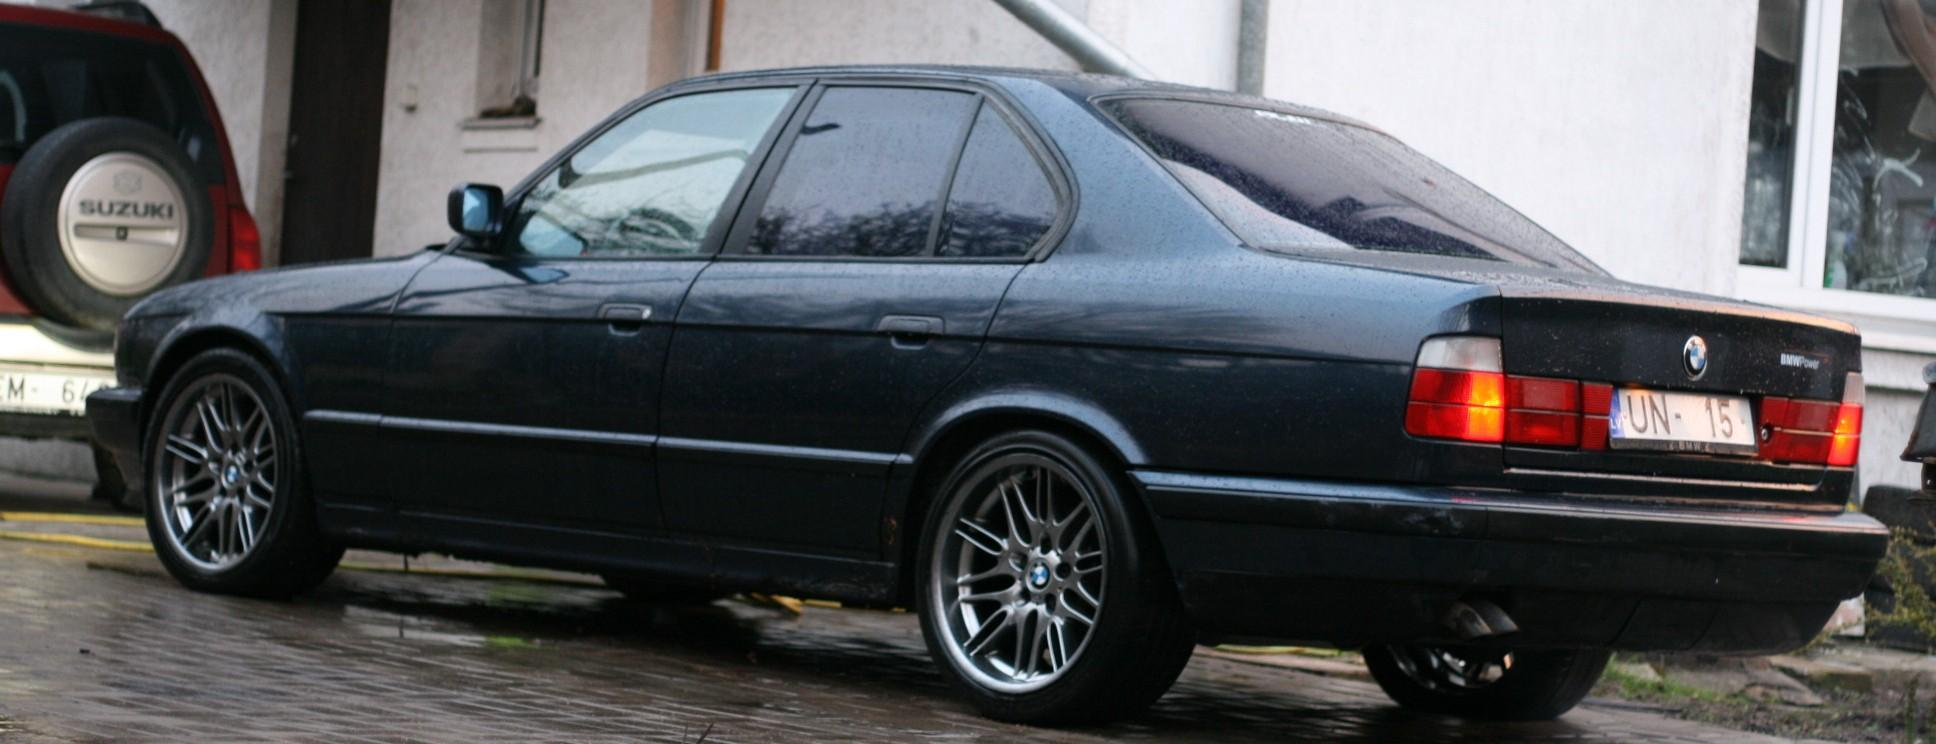 Archins 1989 Bmw 5 Series Specs Photos Modification Info